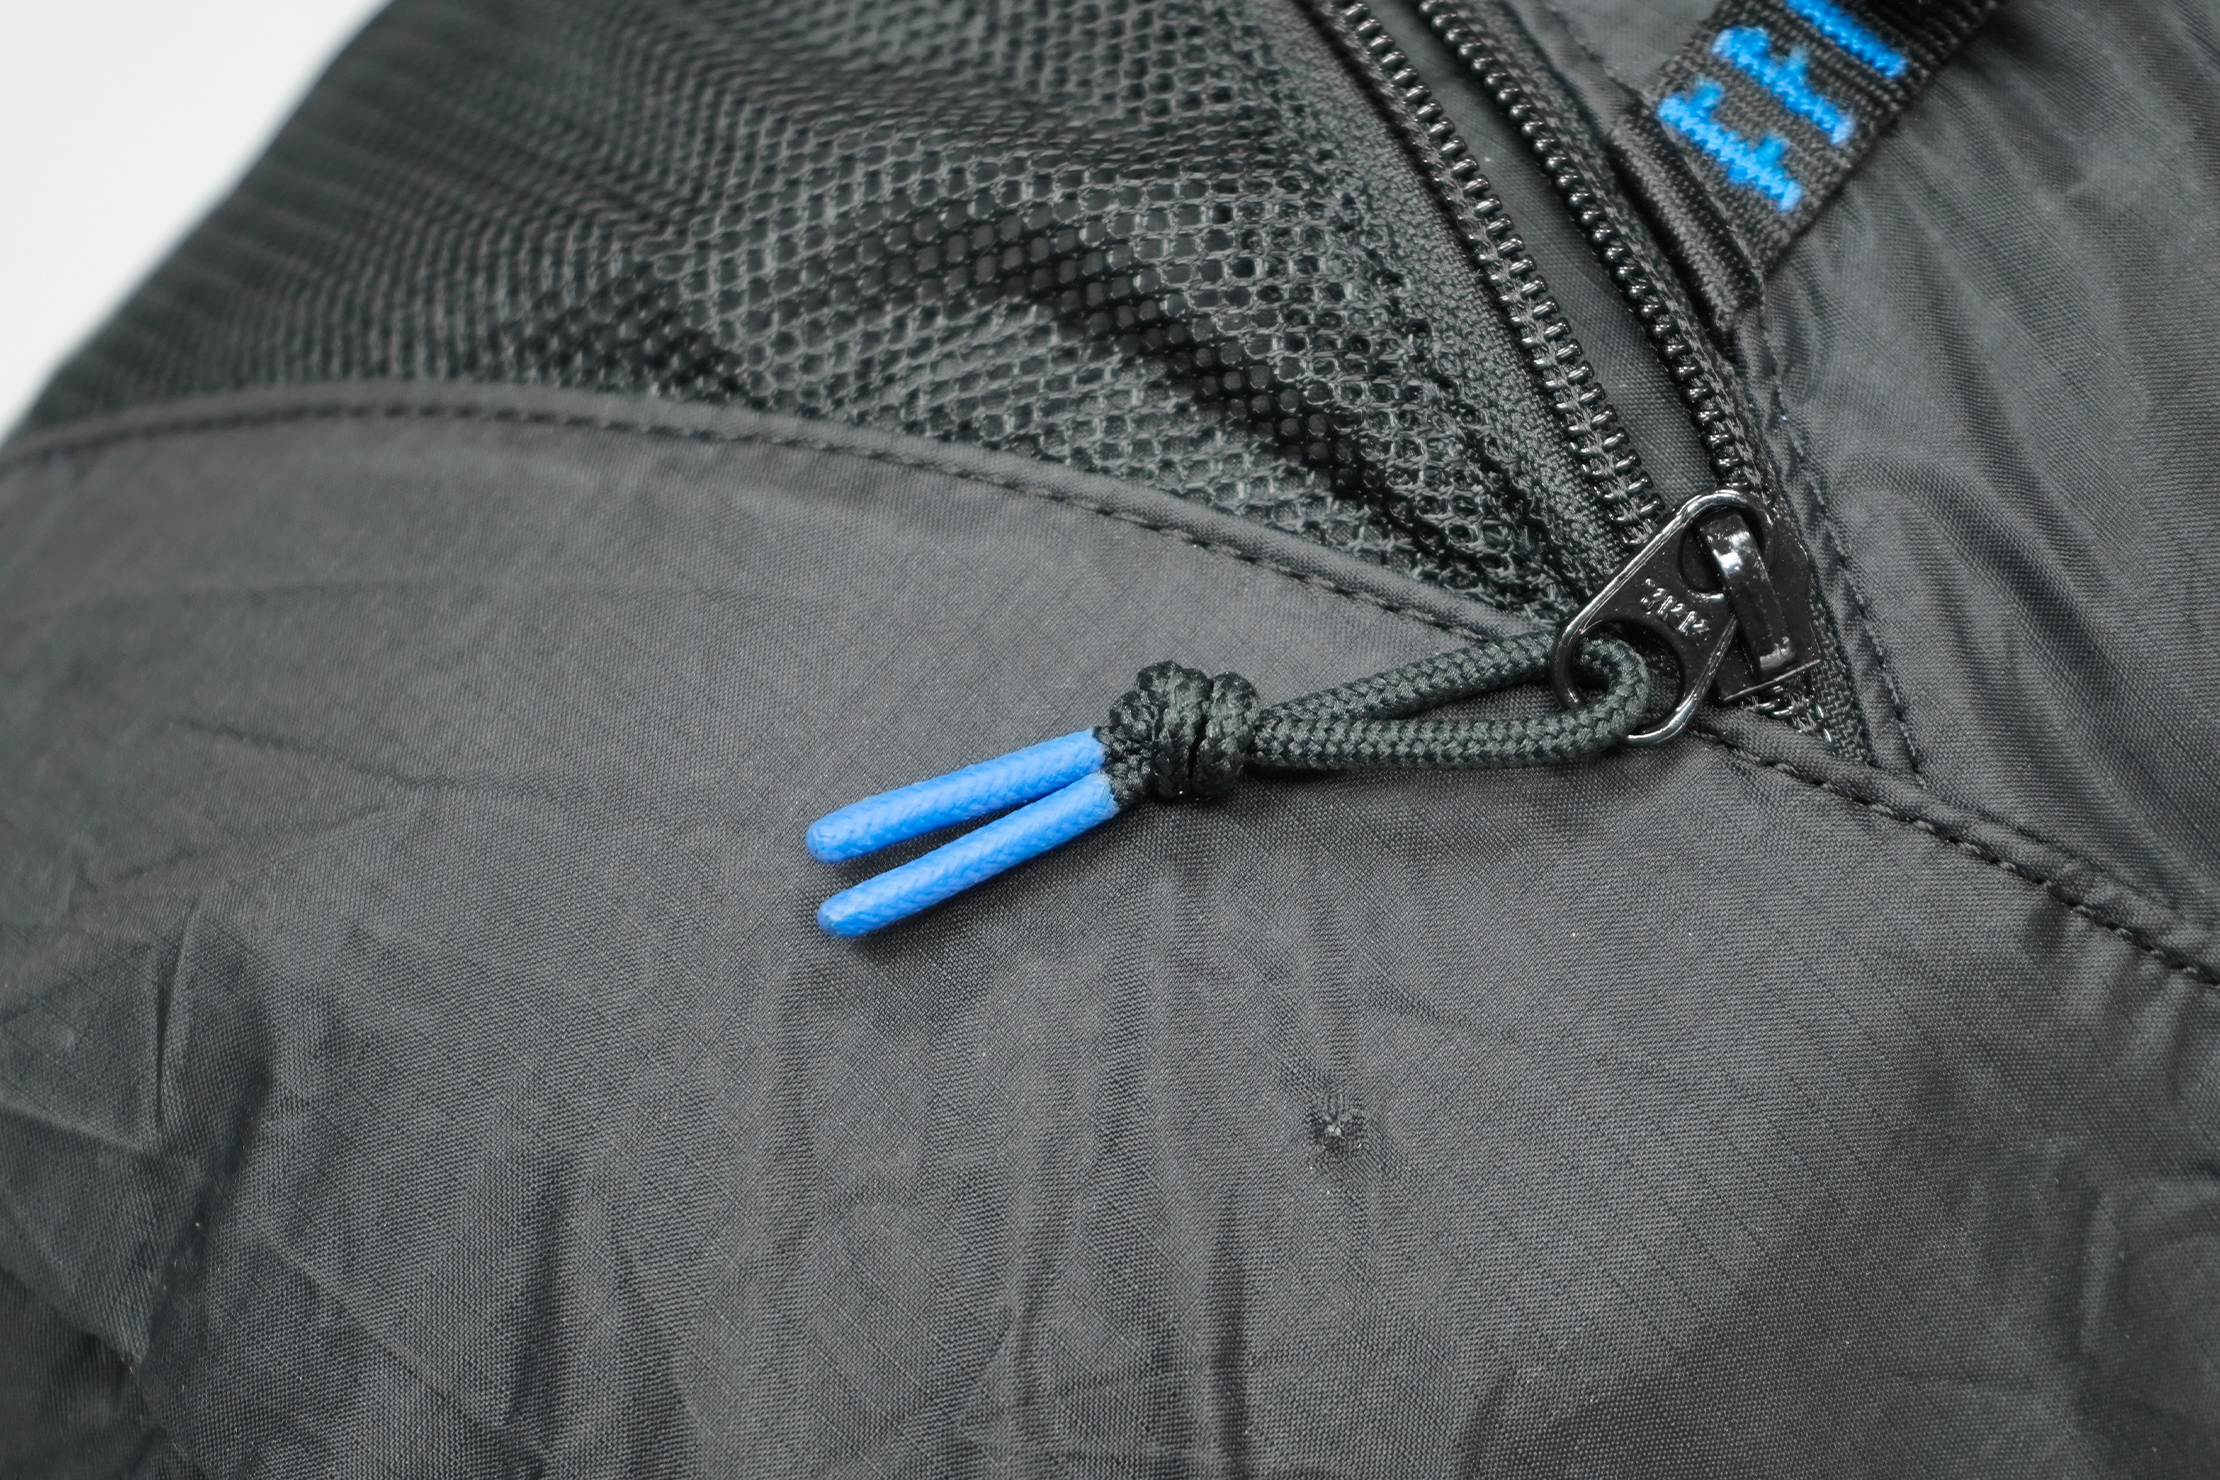 Sandqvist Erland Packable Ziptop Backpack | The CORDURA Ripstop Nylon does its job and stopped the hole from getting bigger